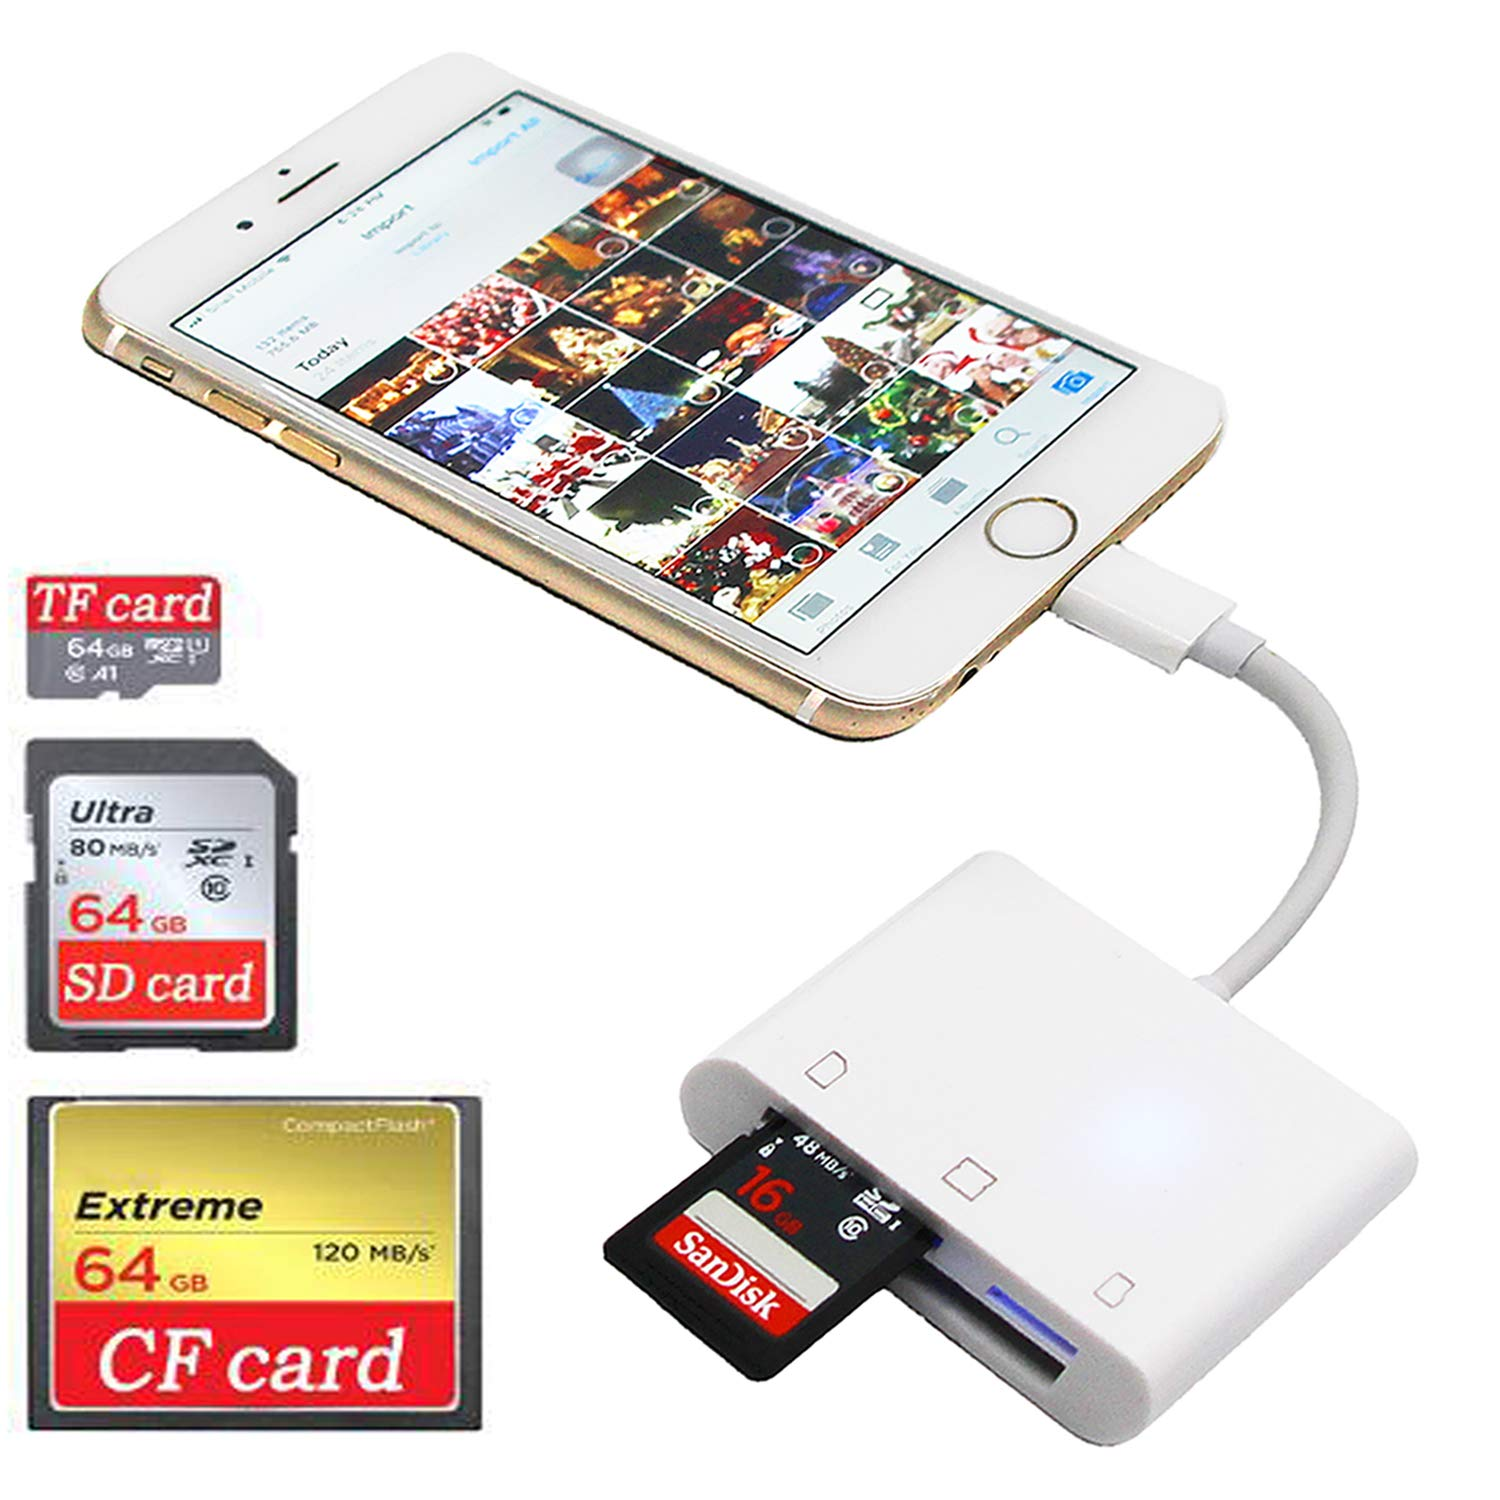 SD CF Card Reader for iPhone/iPad/iPad pro, Camera SD Reader Adapter, Trail Game Camera Viewer for iPhone Xs Max/Xs/X/8 Plus/8/7 Plus/7/iPad Mini/Air, SD/TF/CF Card Reader, No App Require